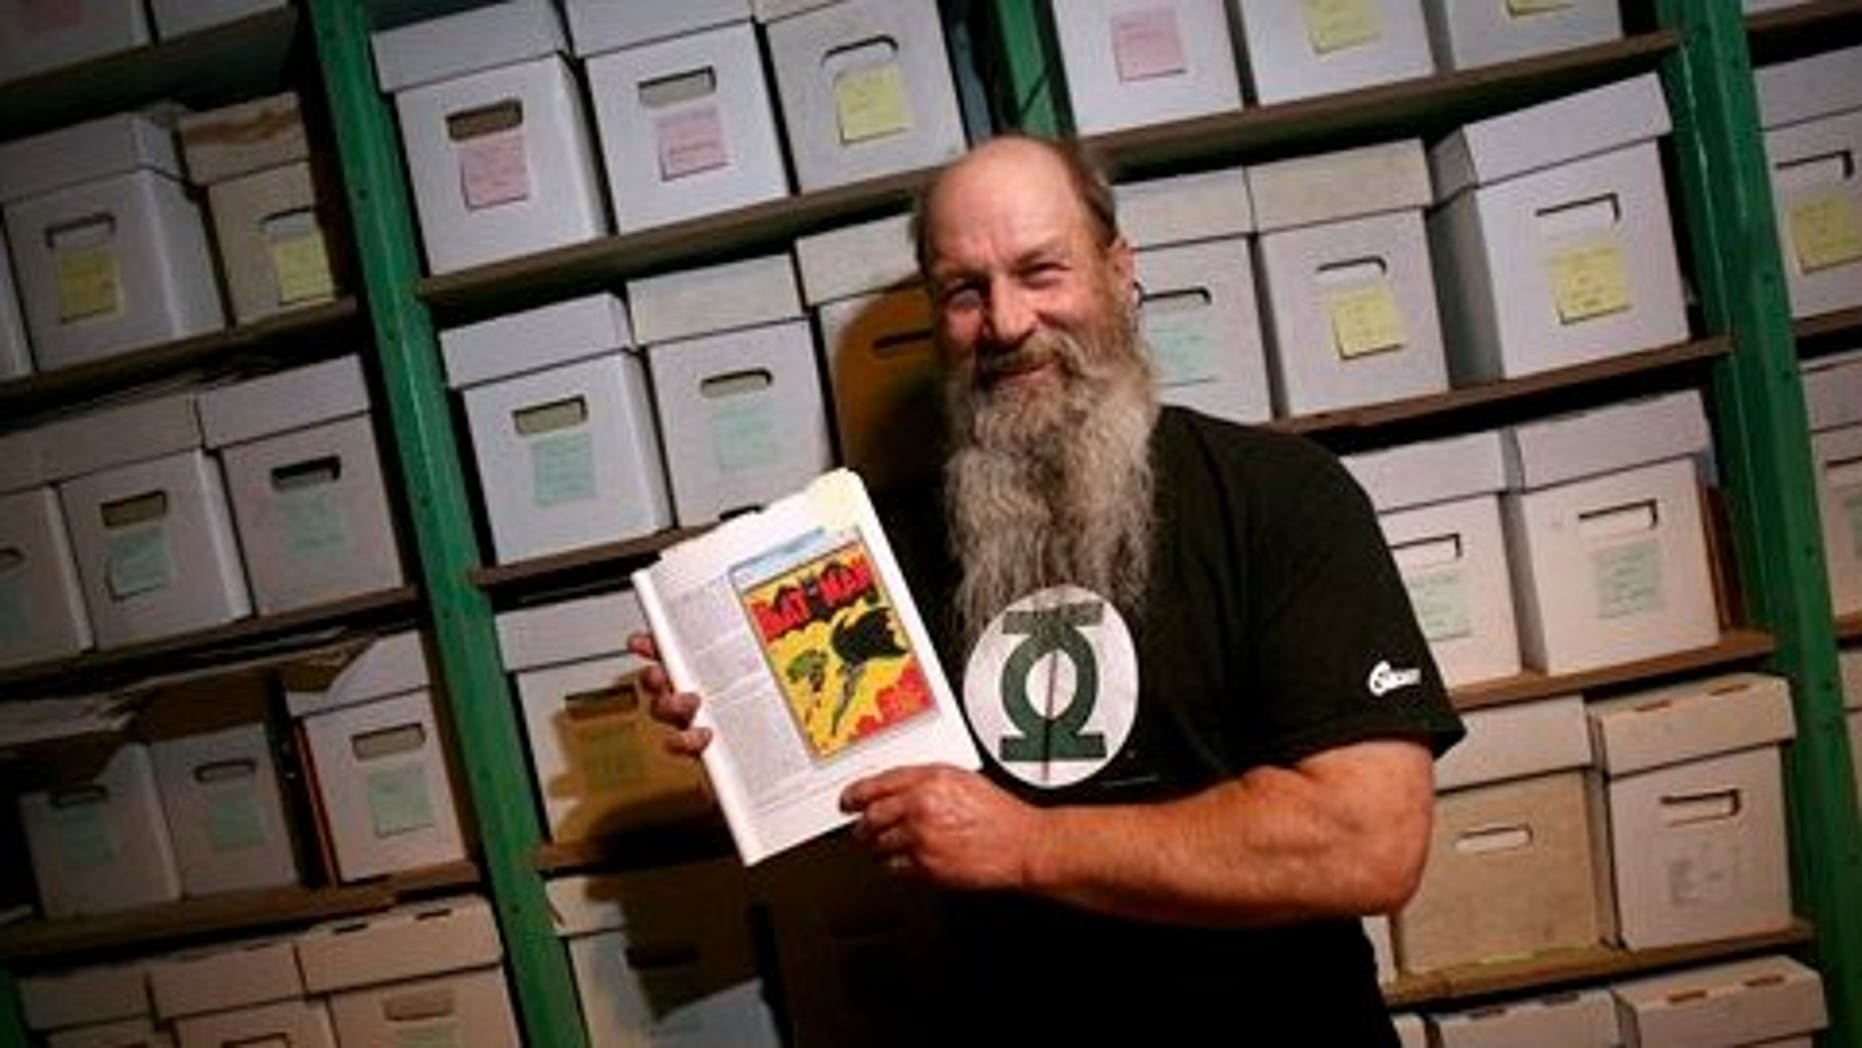 July 29: Comic book collector Mike Wheat poses with a book showing the cover of Batman No. 1 in front of boxes containing tens of thousands of comic books at his Fairbanks, Alaska home. Wheat put his copy of the 1940 Batman No. 1 on the auction block through Dallas-based Heritage Auction Galleries. (AP)